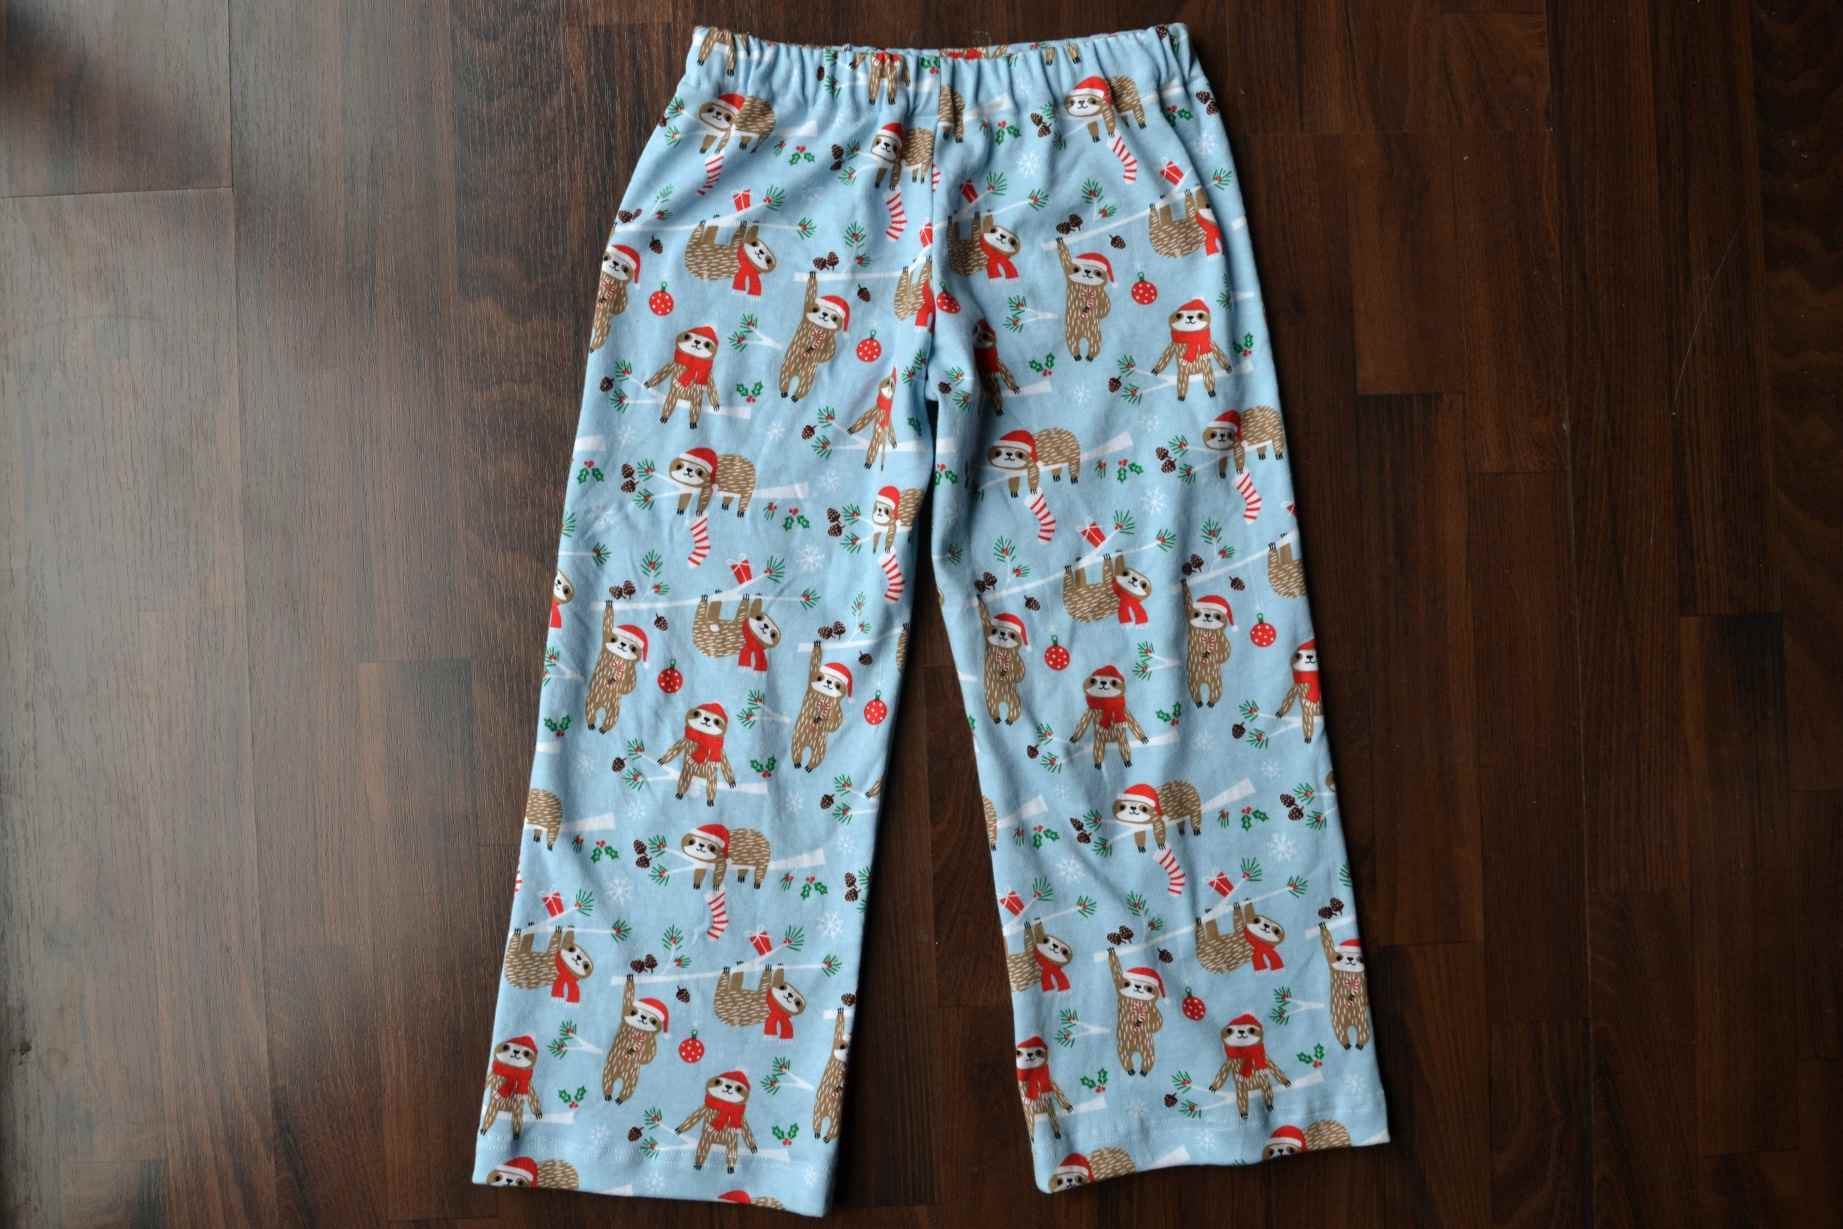 A pair of kids' pajama pants on a table